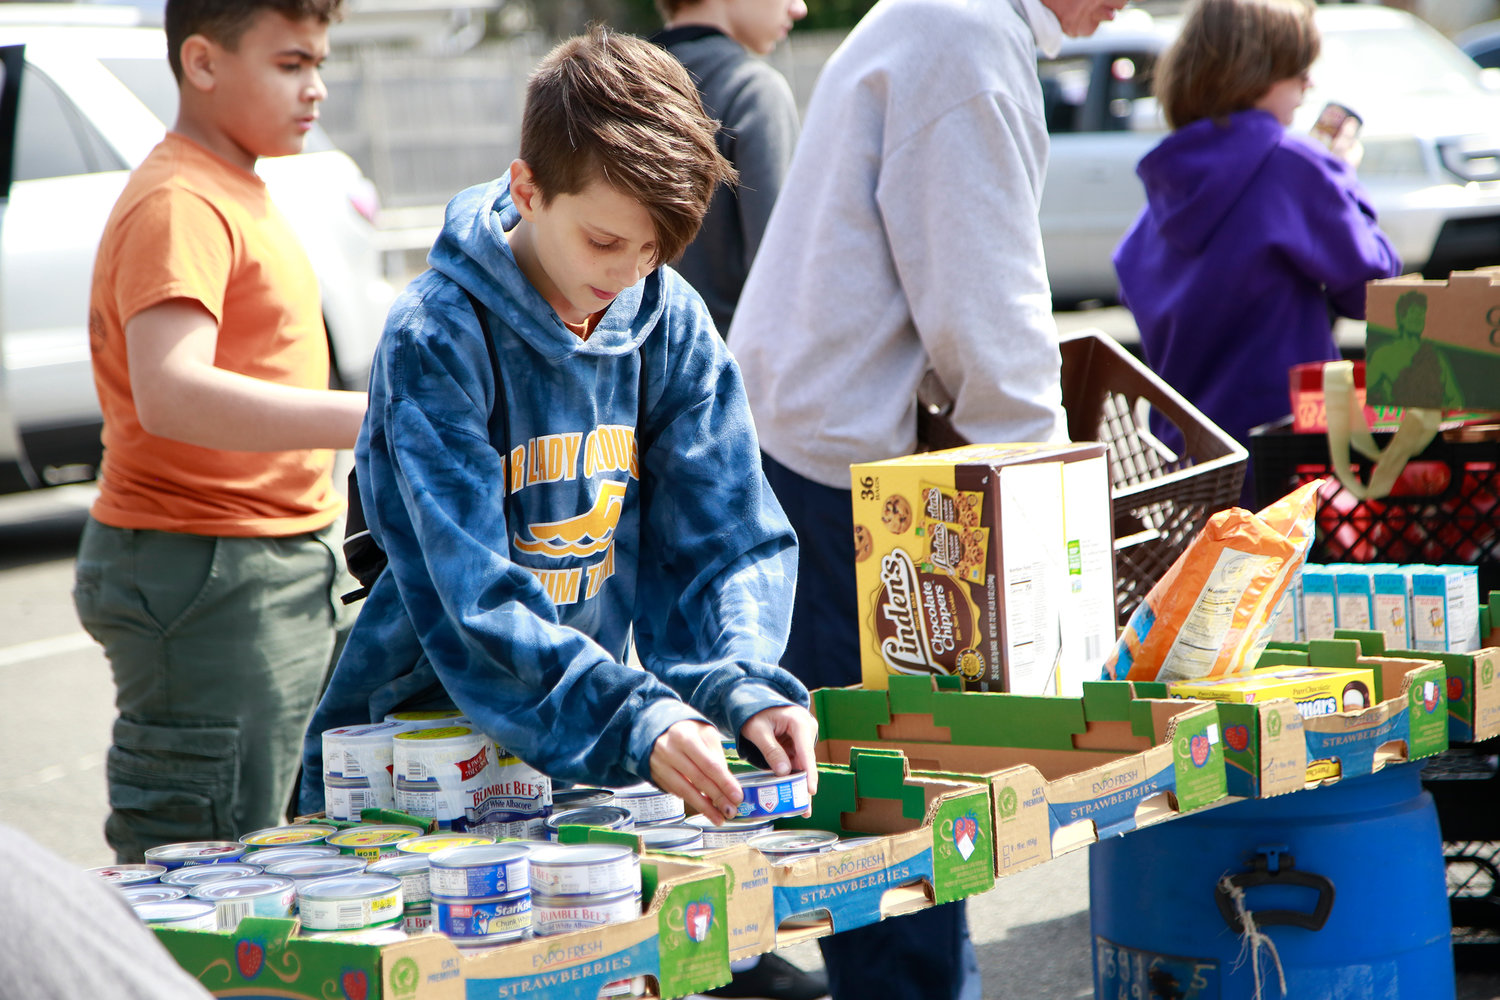 Team Troop 24 member James Castrofilippo organized his group's donations during Our Lady of Lourdes Church's Souper Scavenger Hunt last Saturday.